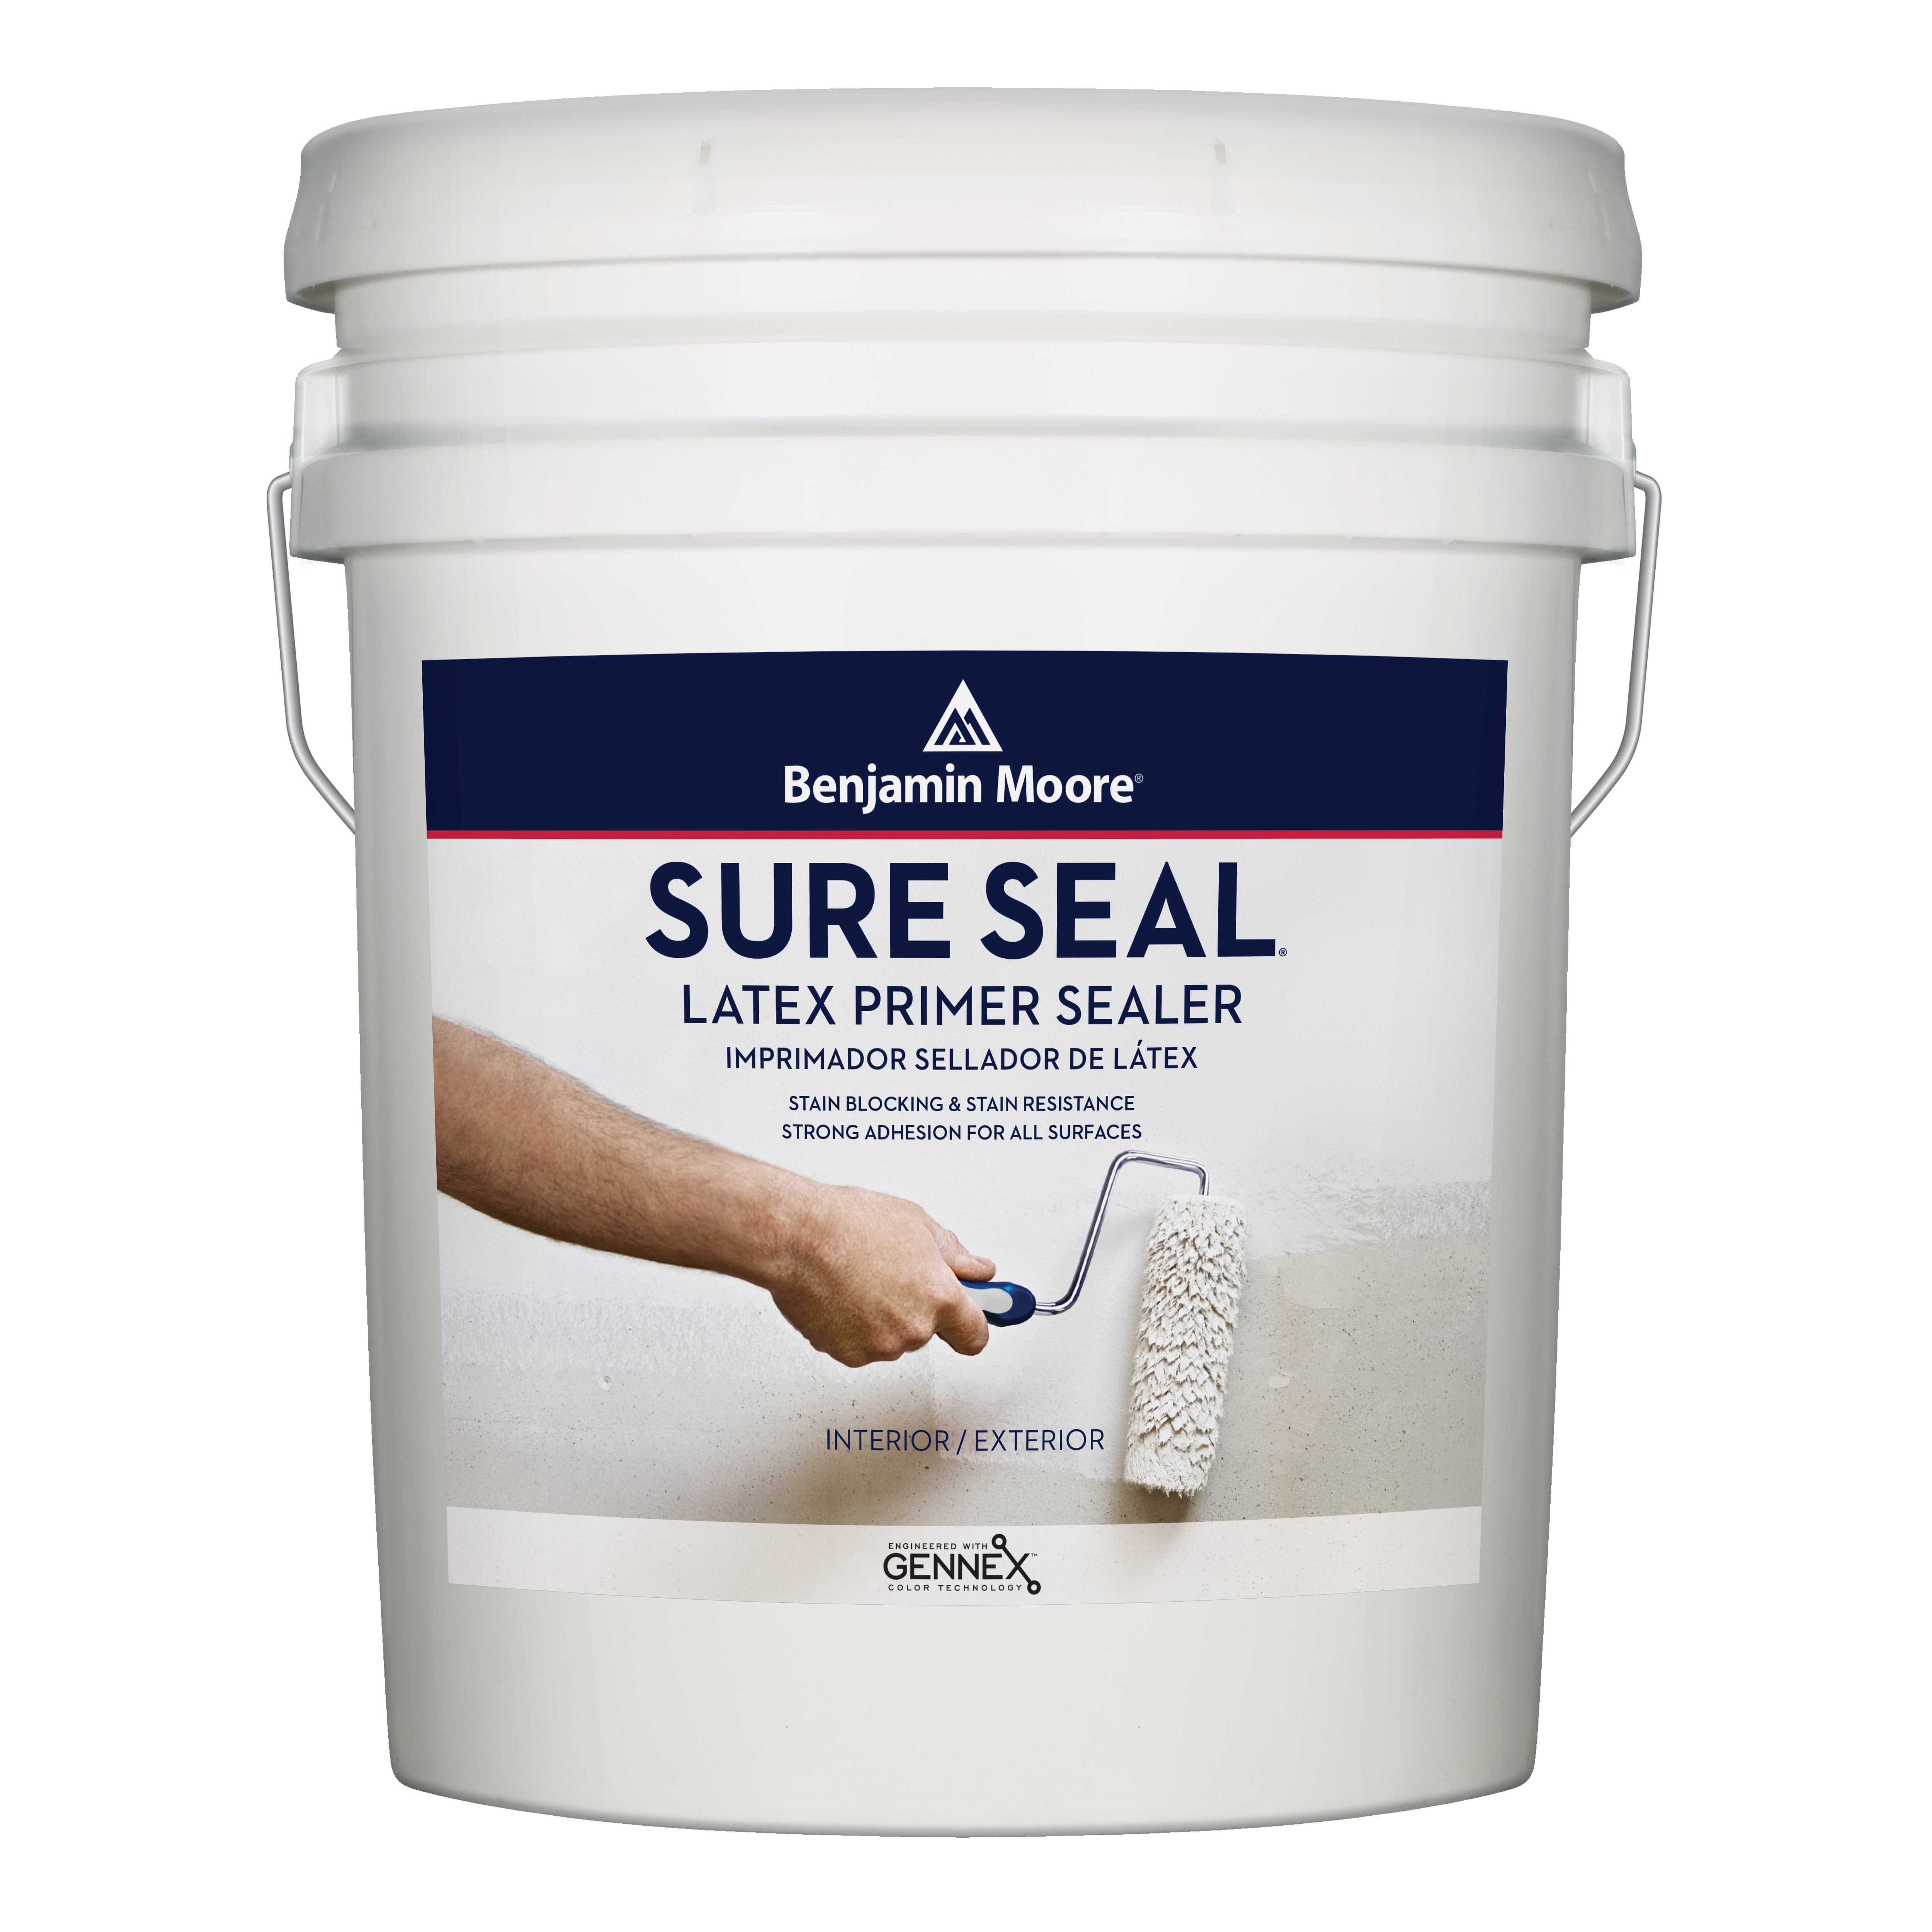 Picture of Benjamin Moore Sure Seal 002700-005 Primer, Flat, White, 5 gal, Pail